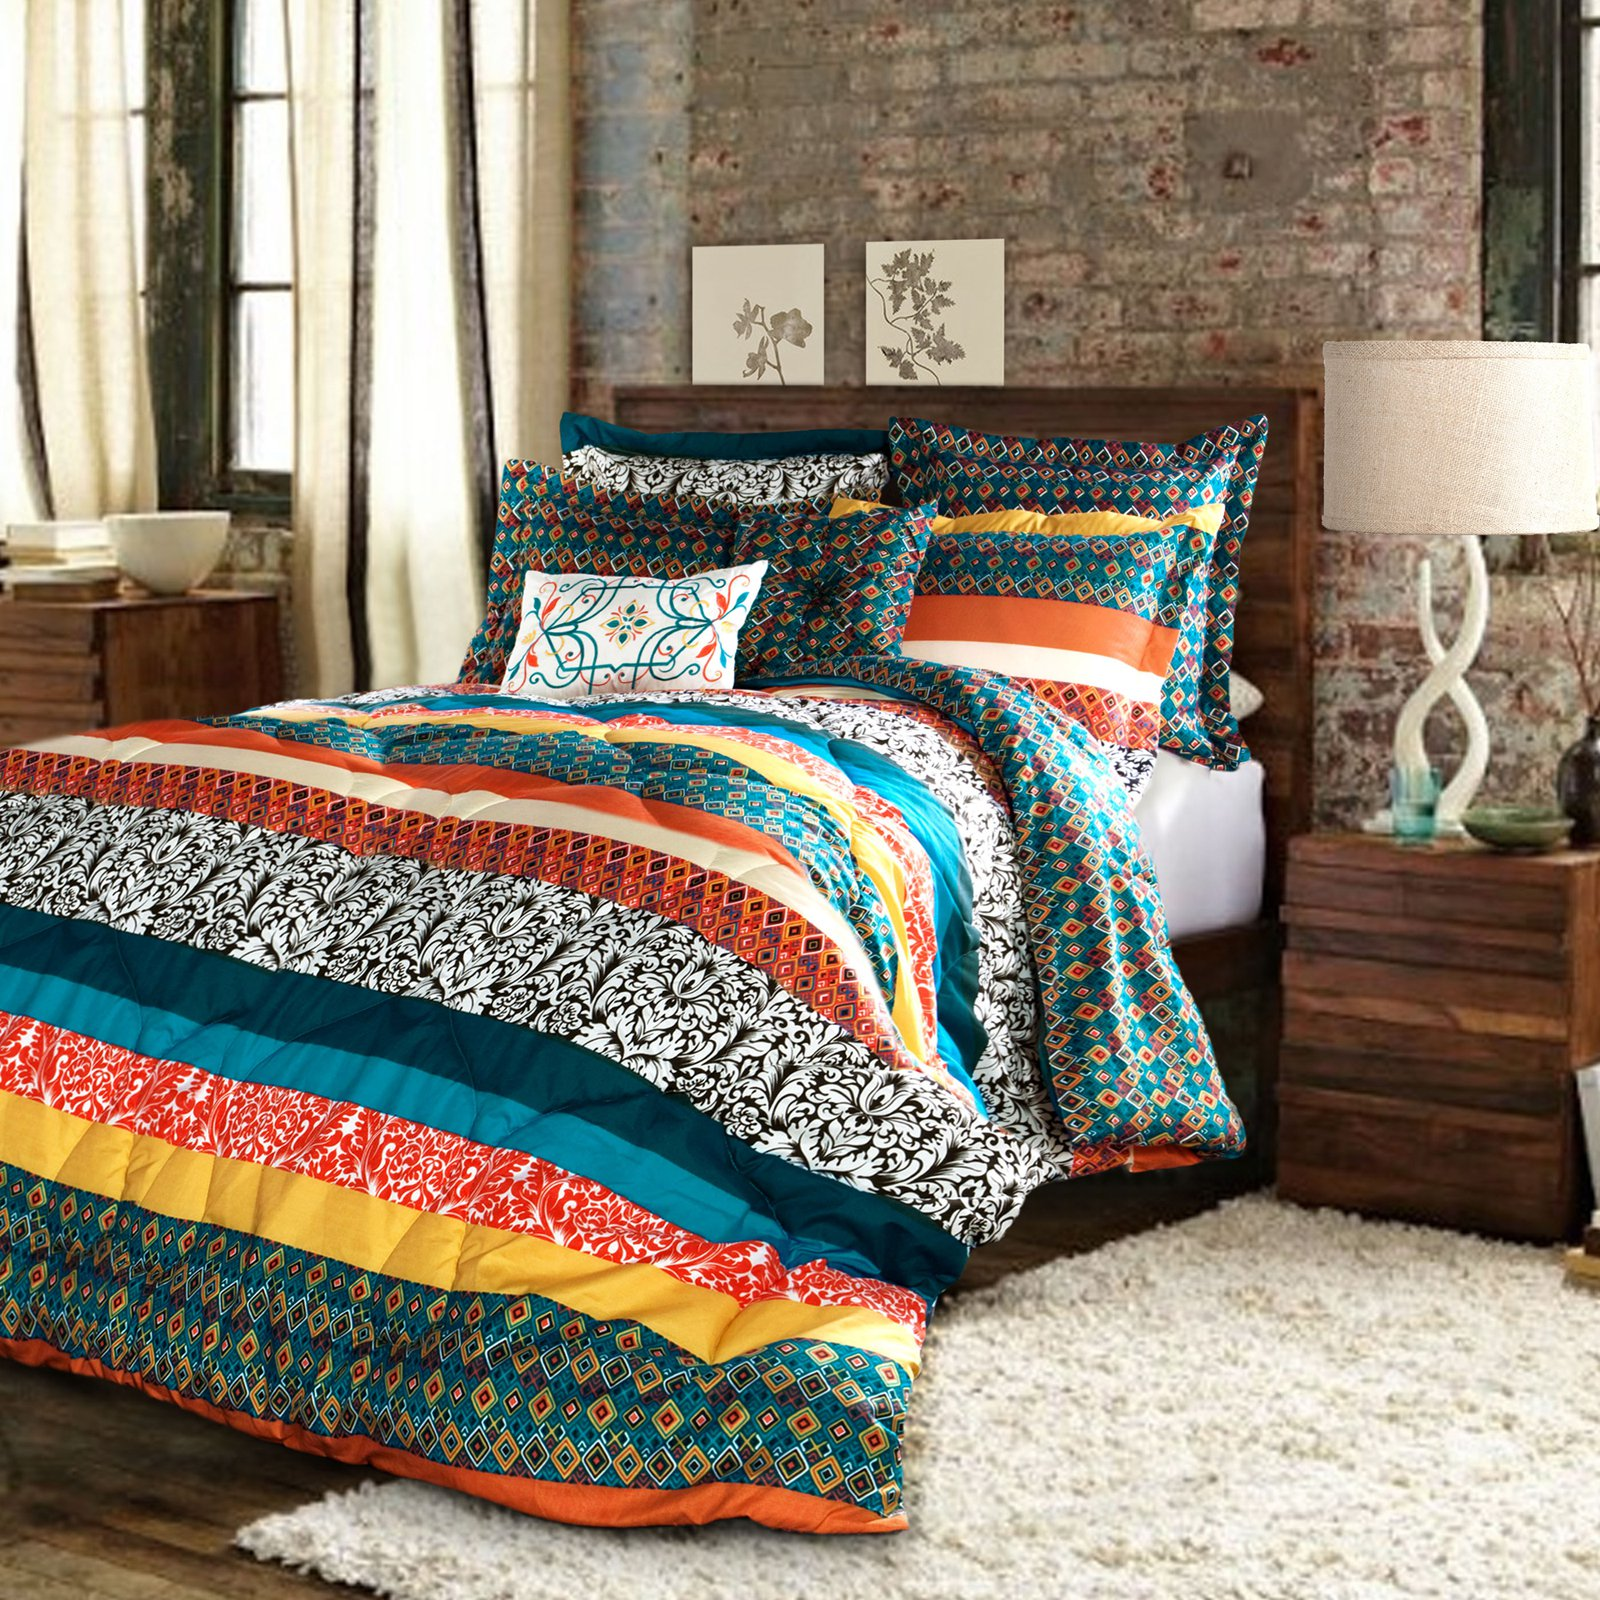 unusual unusualng sets bedroom sheet bedding photos king size coverts quilt covers of inspirations comforter set duvet boho comforters full bohemian